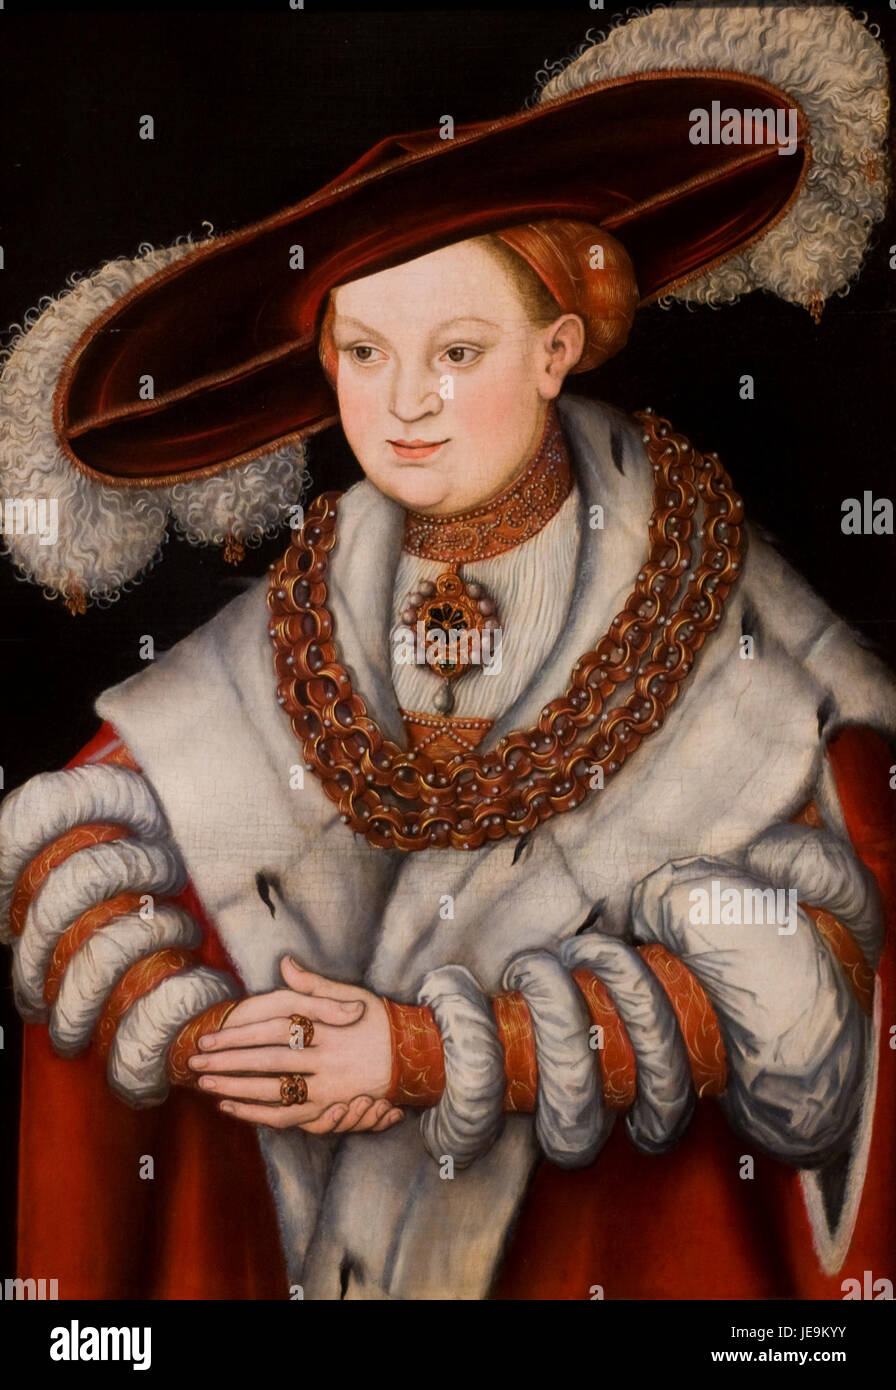 Cranach, Lucas I - Magdalena of Saxony - Art Institute of Chicago - Stock Image